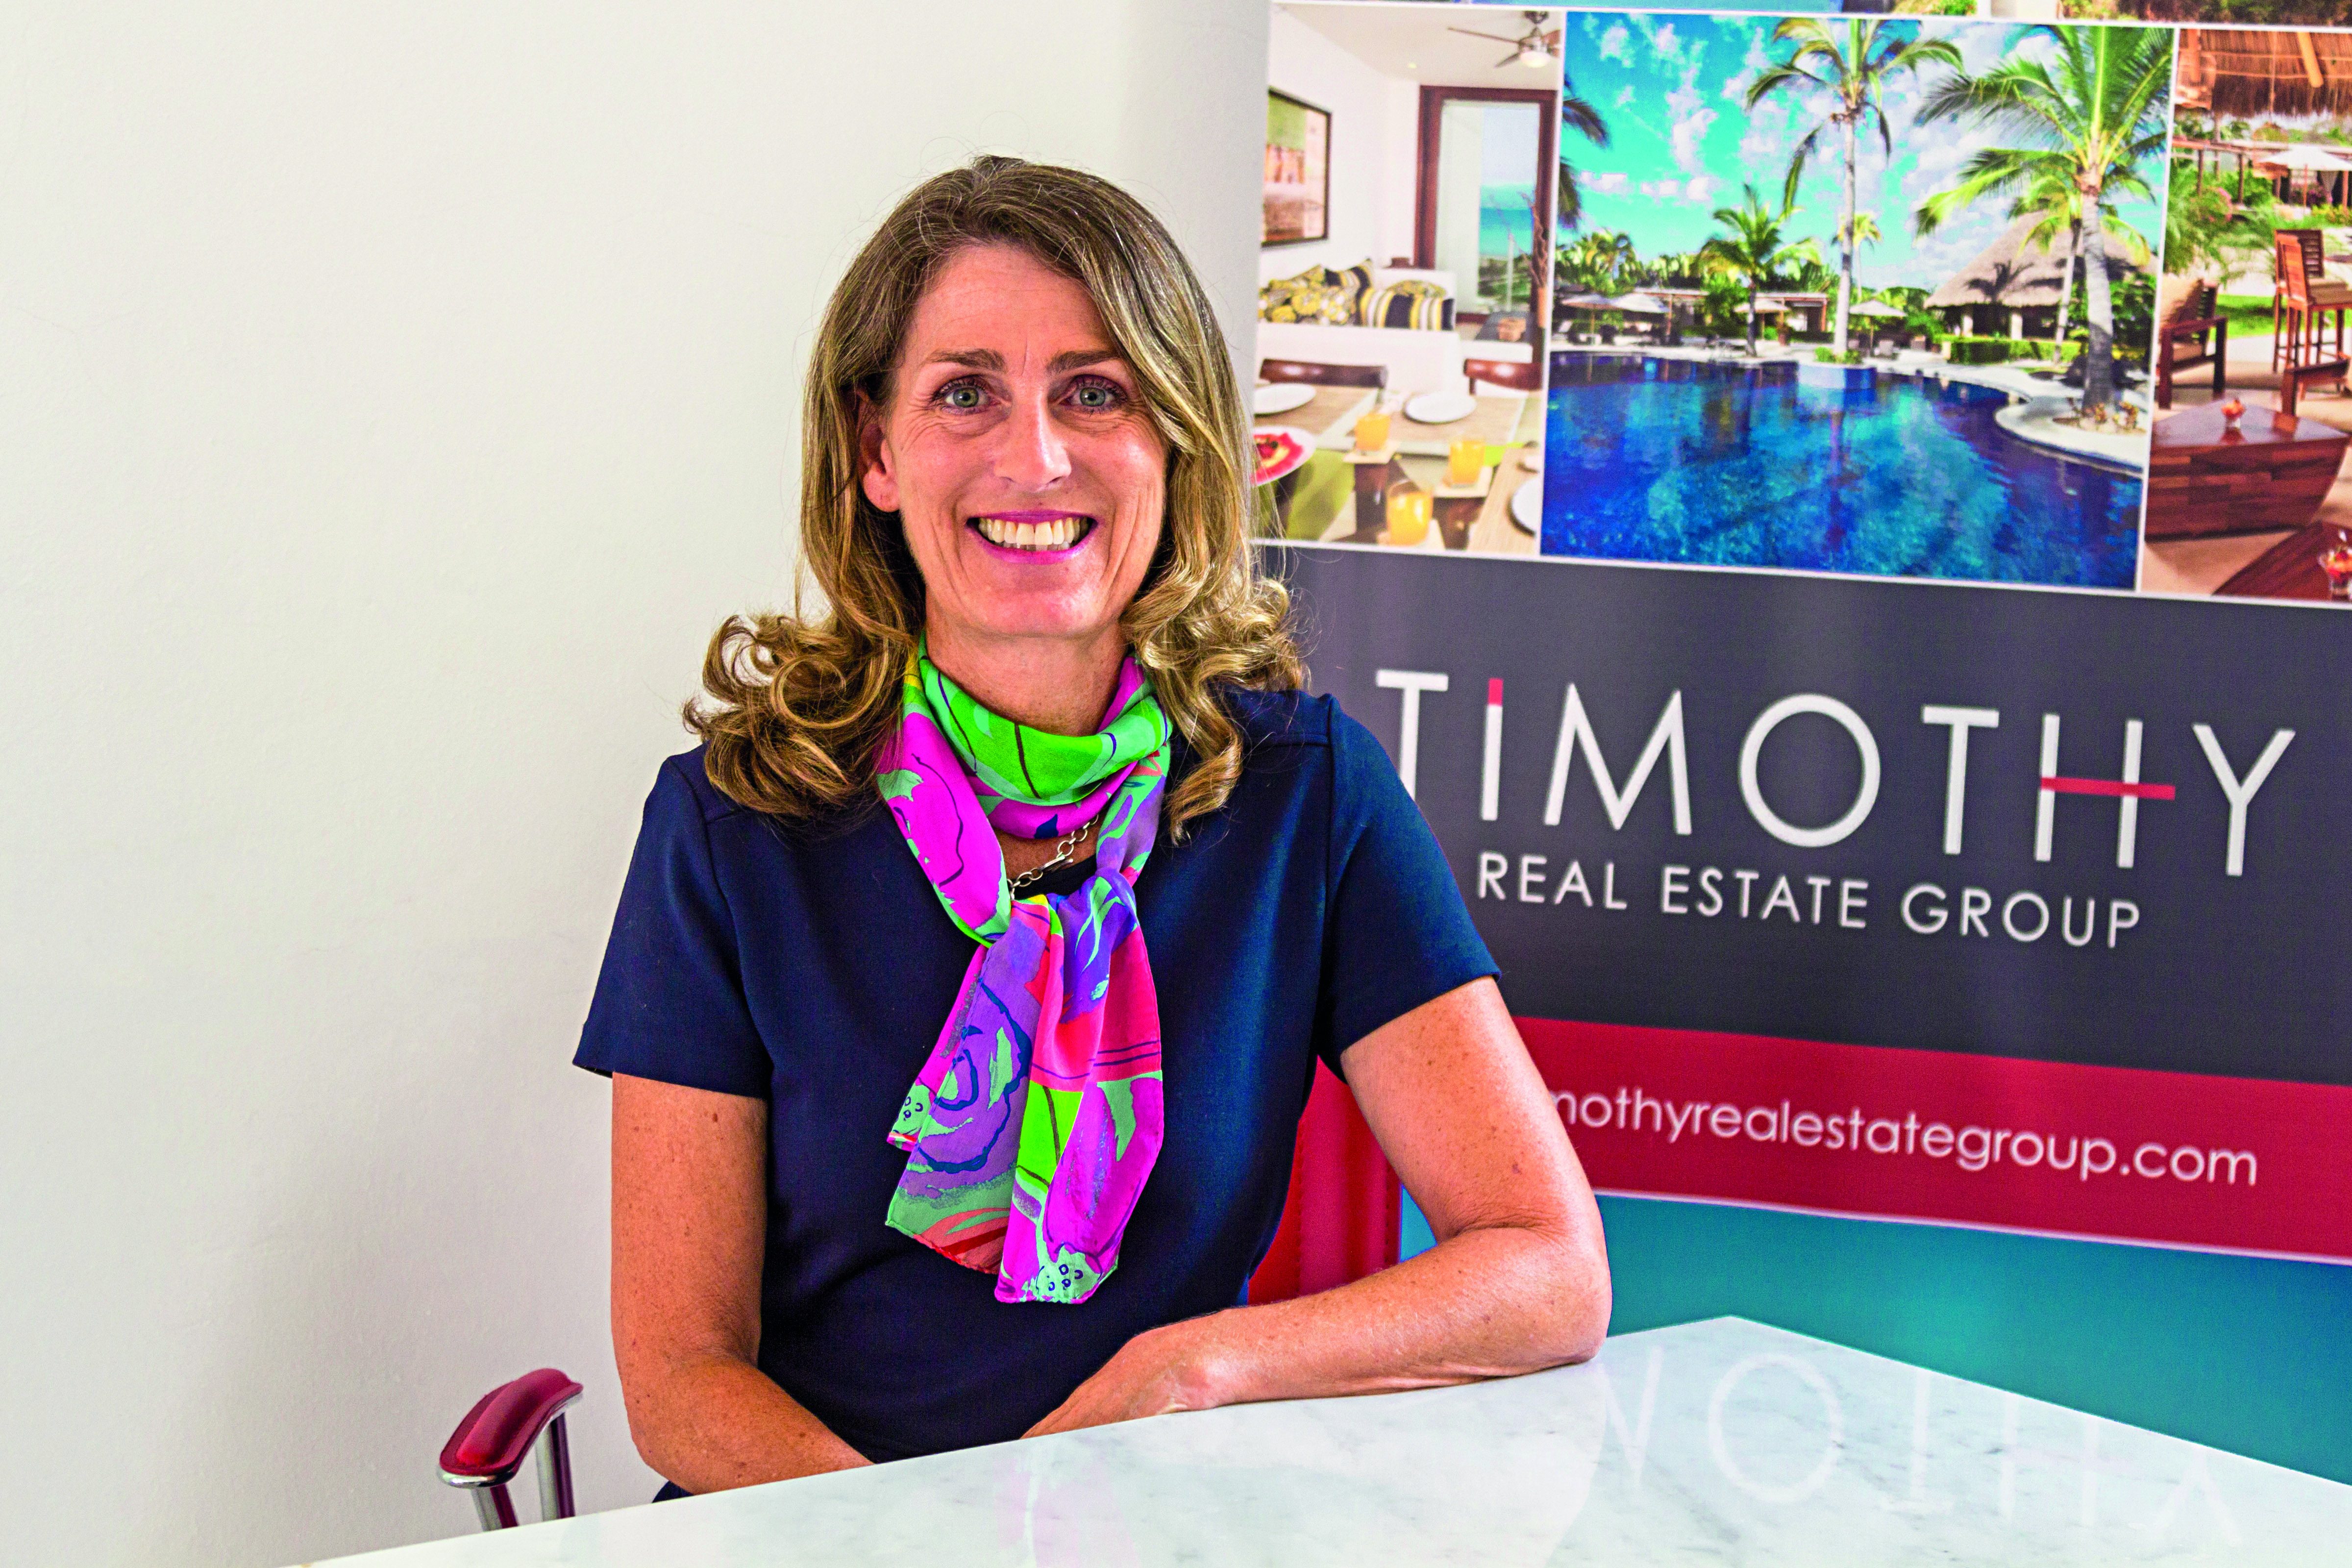 Victoria Pratt de Timothy Real Estate Group